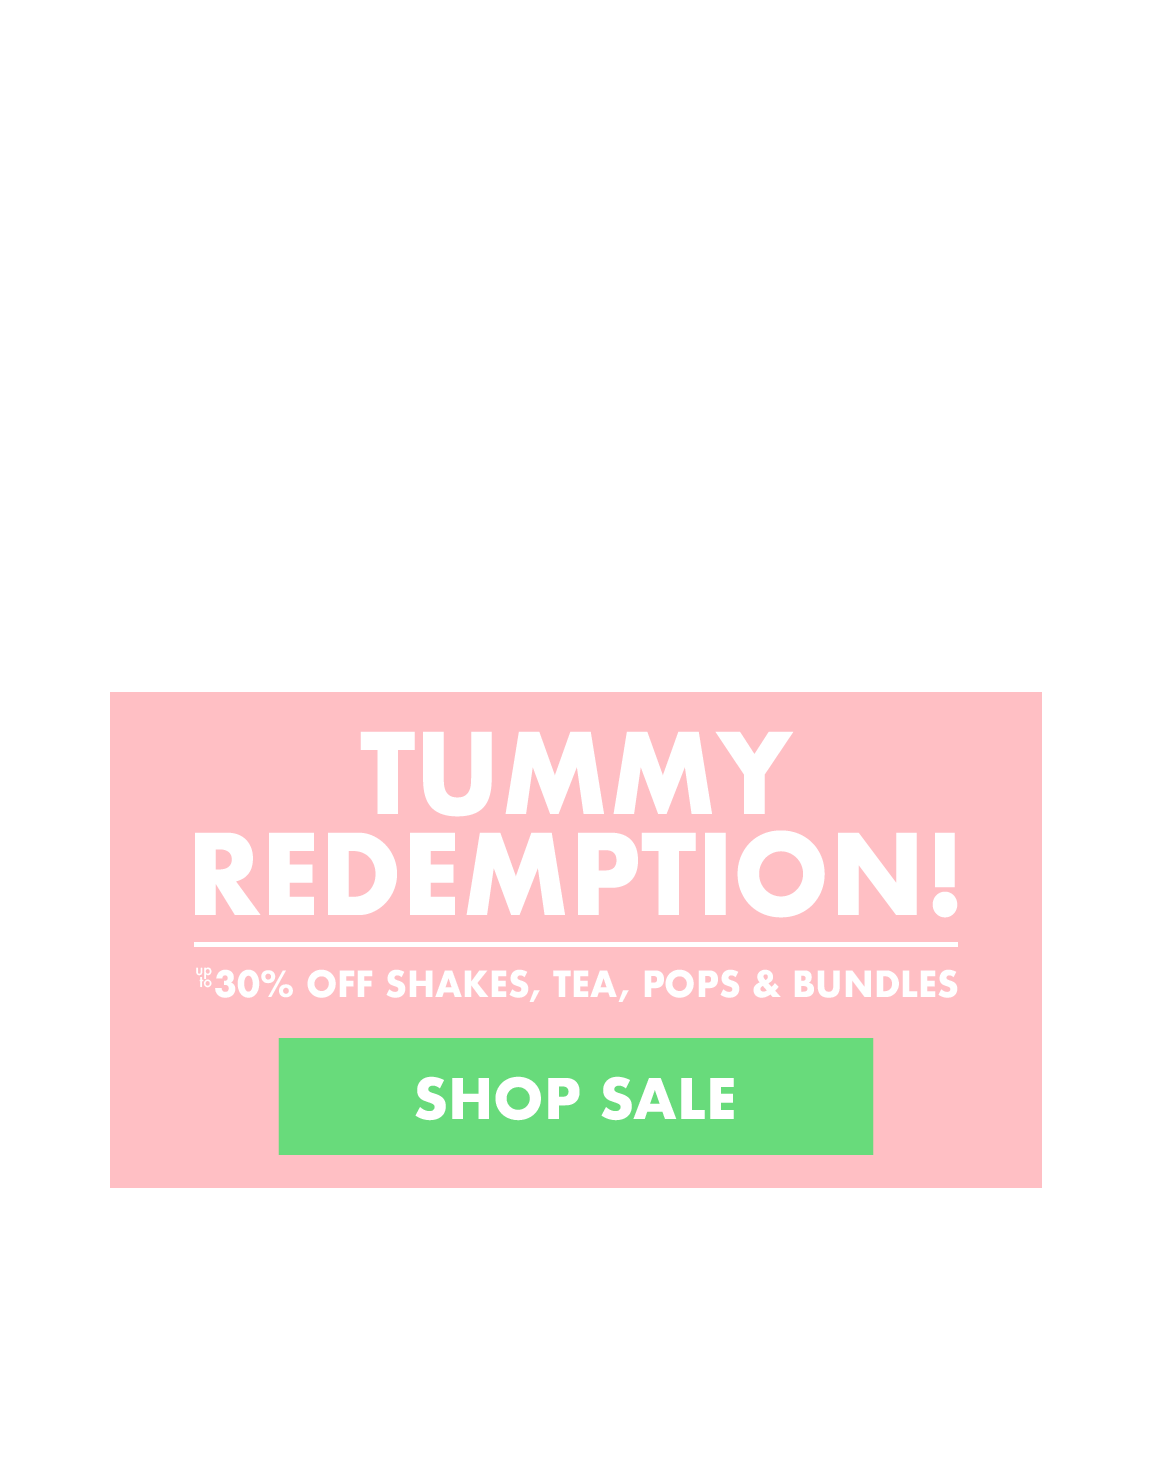 TUMMY REDEMPTION! - Up to 30% off Shakes, Tea, Lollipops & Bundles - SHOP NOW